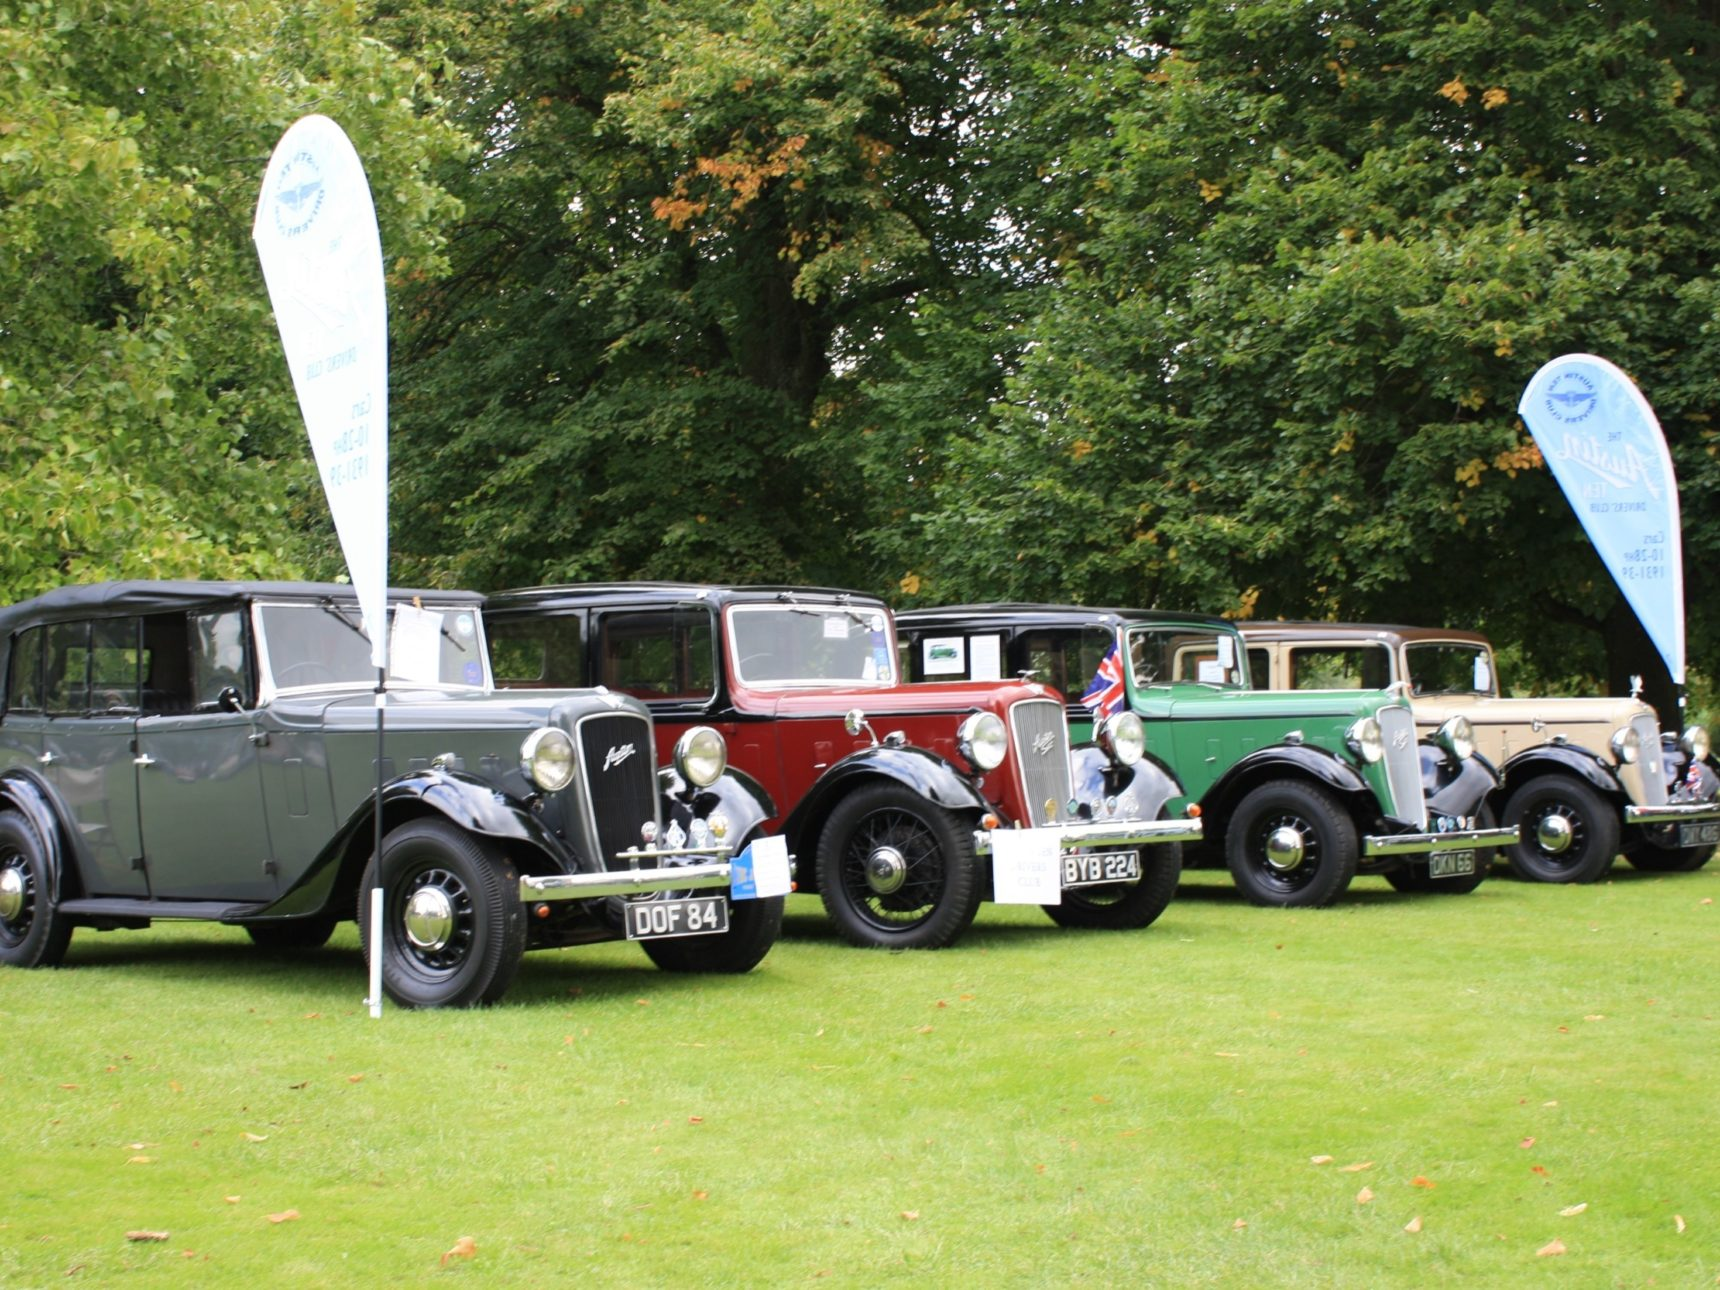 A selection of vintage cars sit on the law in between 2 banners